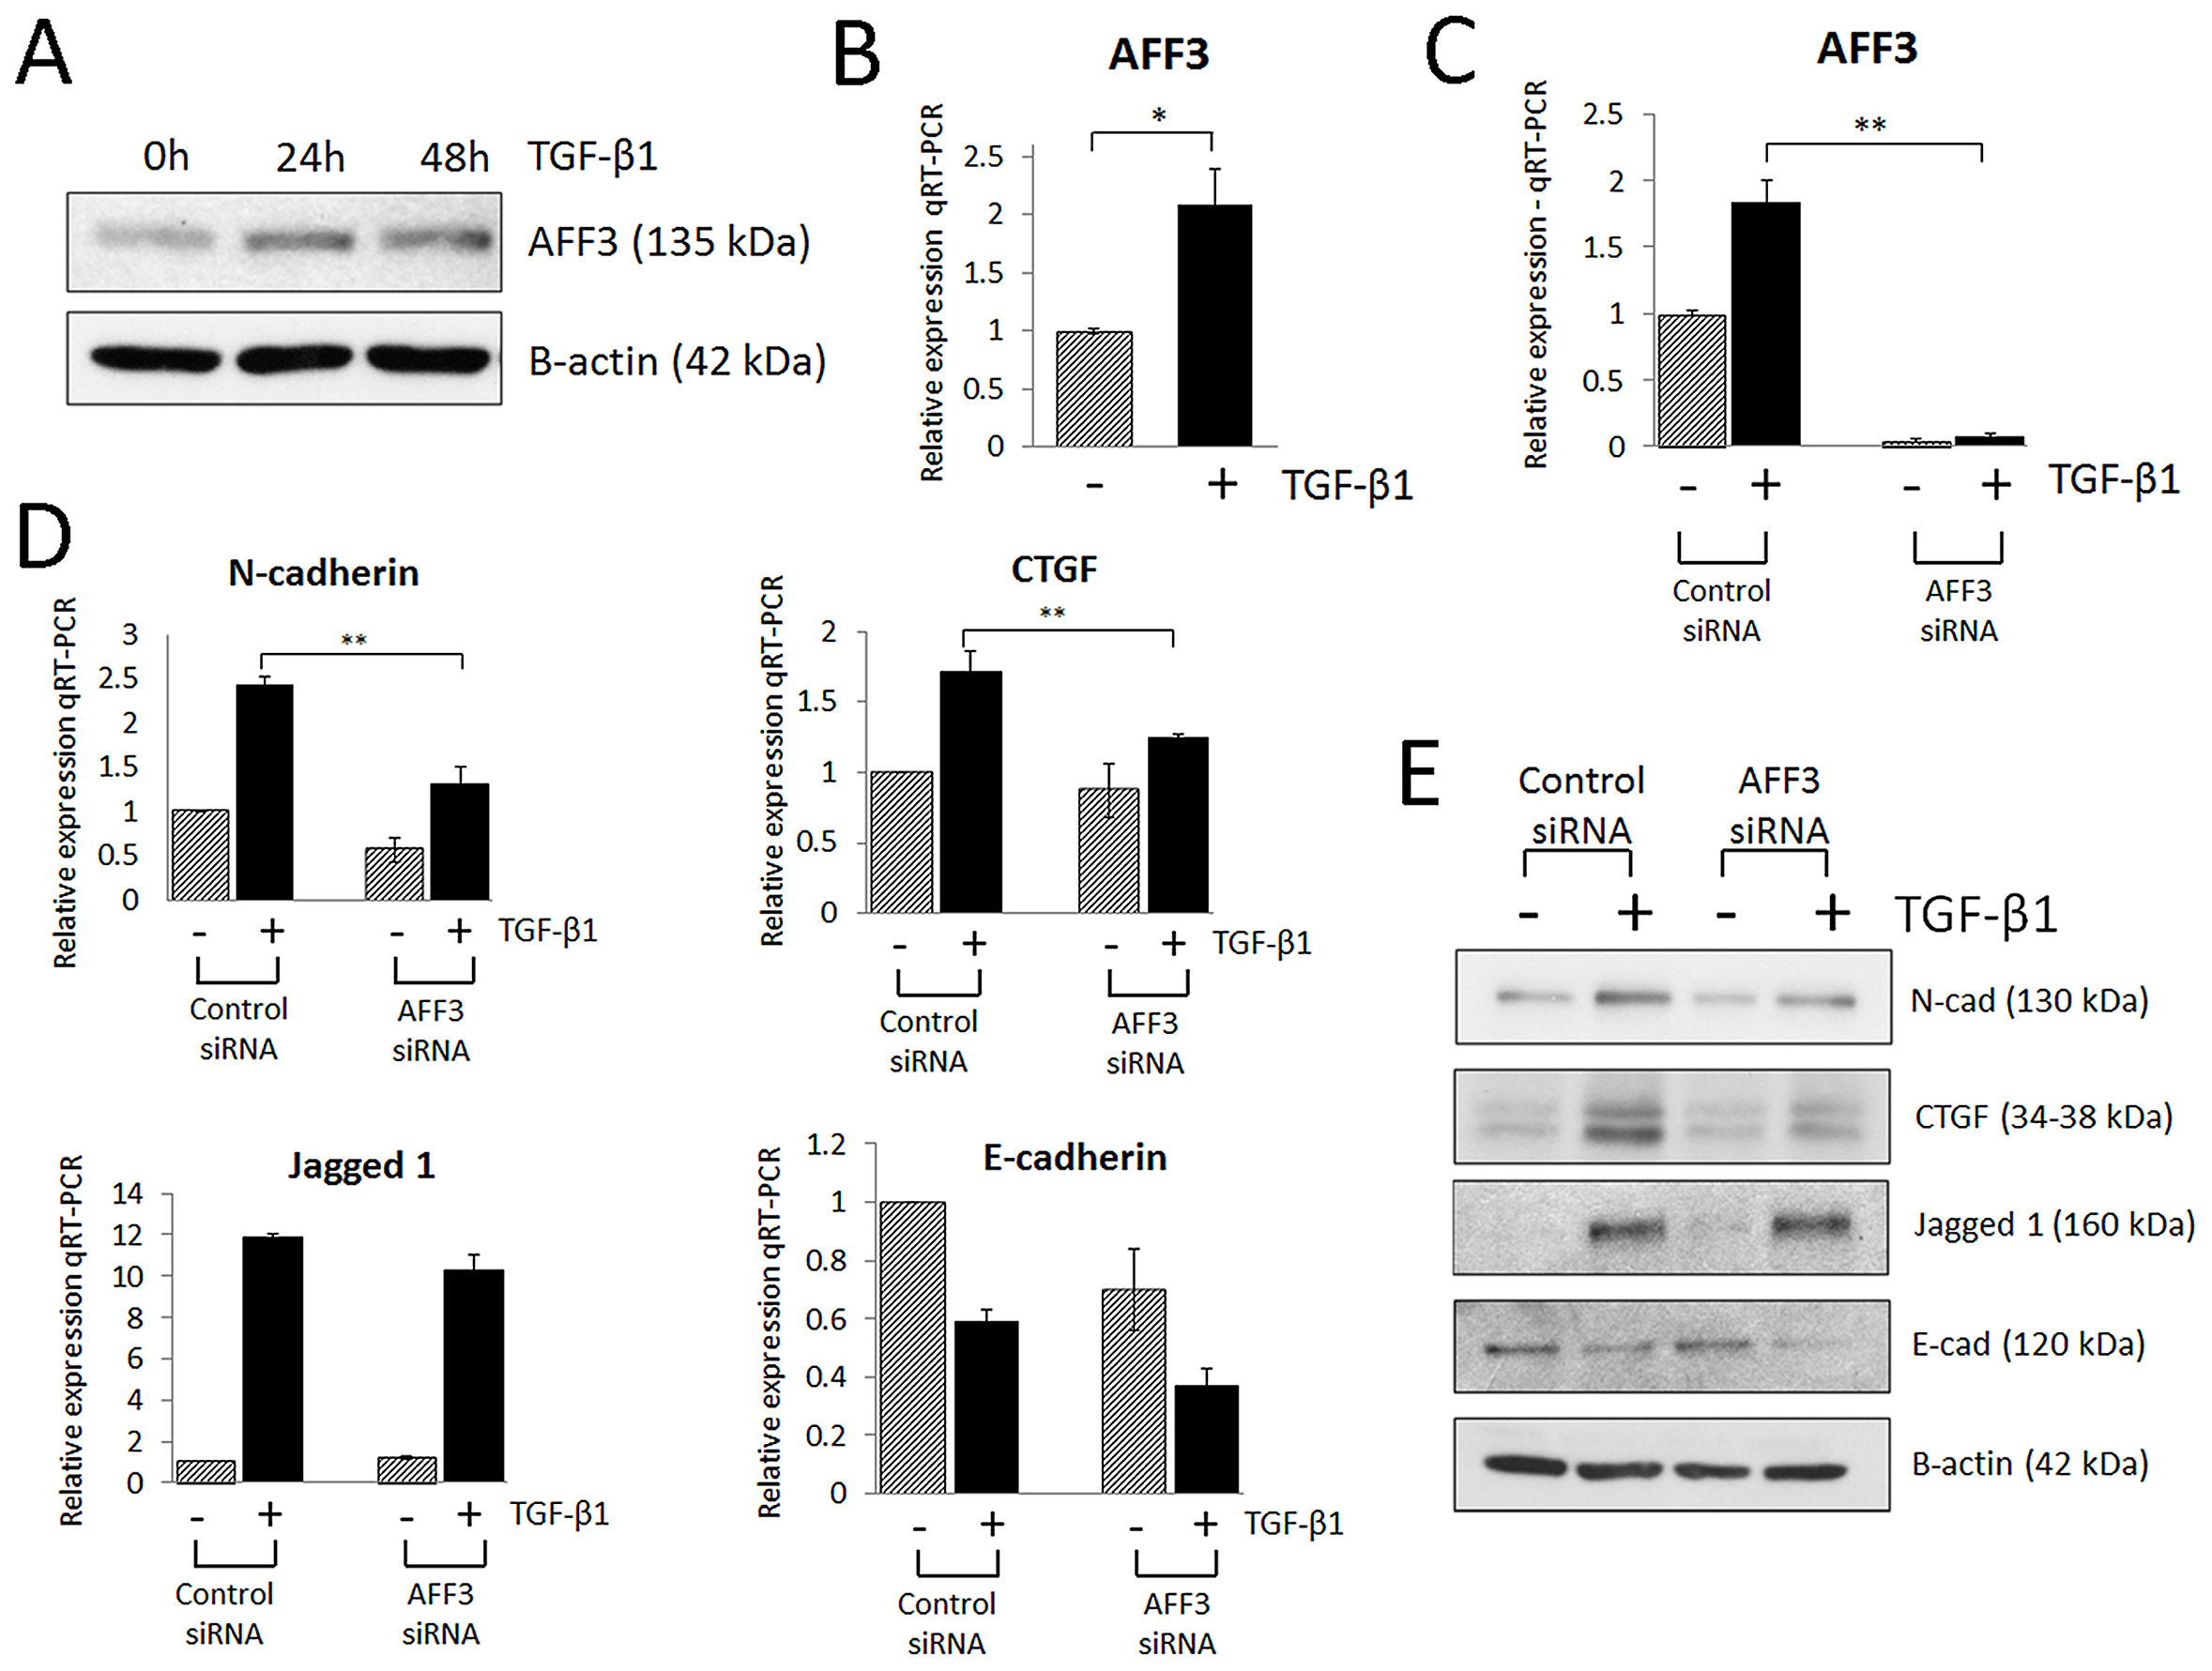 AFF3 is upregulated in renal epithelial cells (HK-2) stimulated with pro-fibrotic TGF-β1.